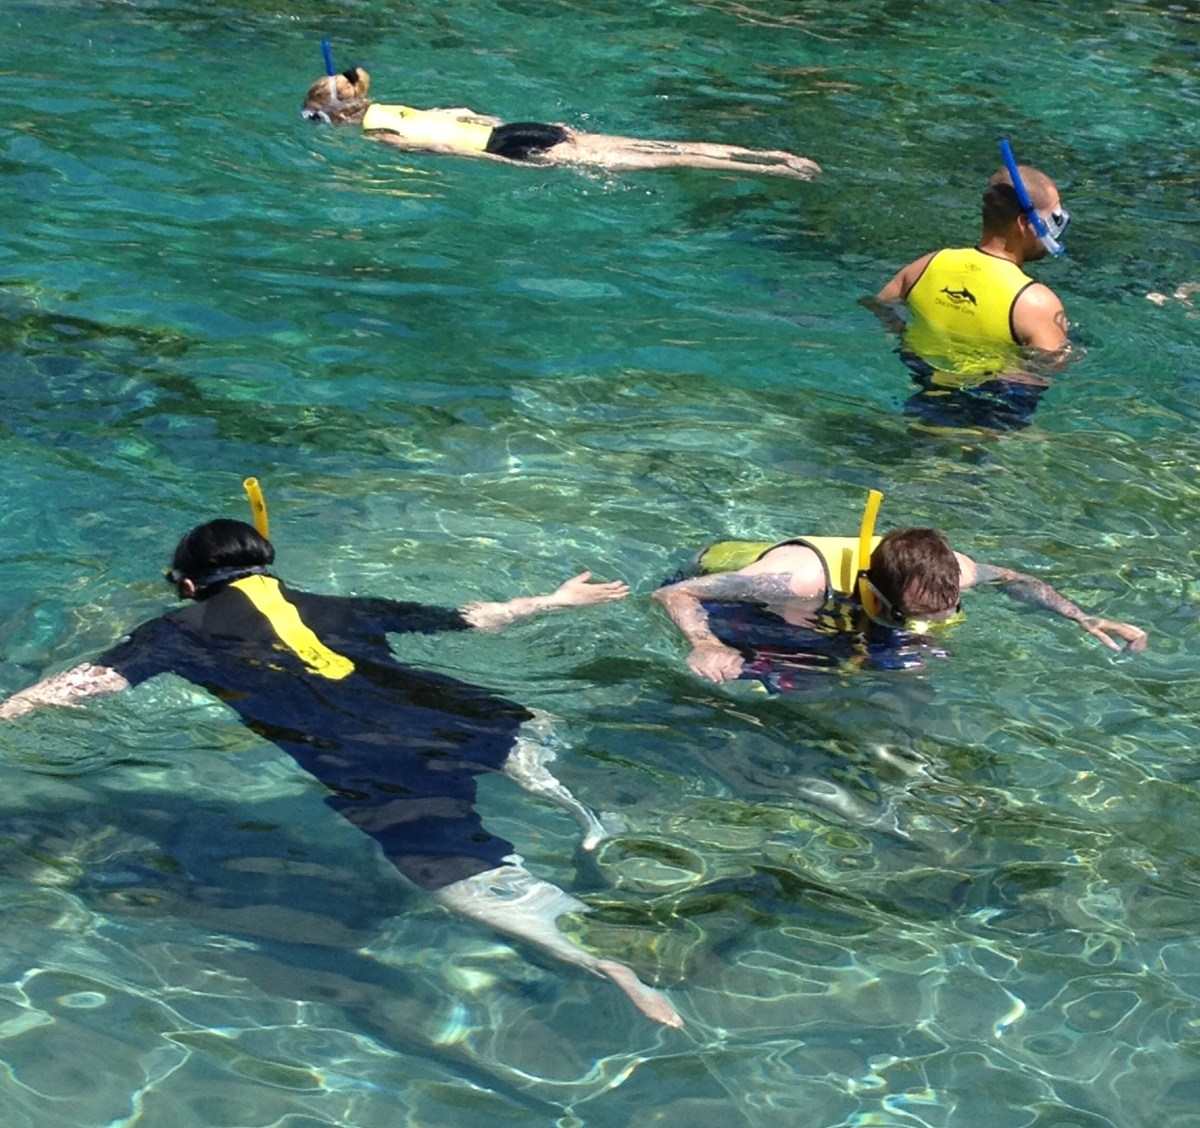 5 things I learnt at Discovery Cove, Orlando